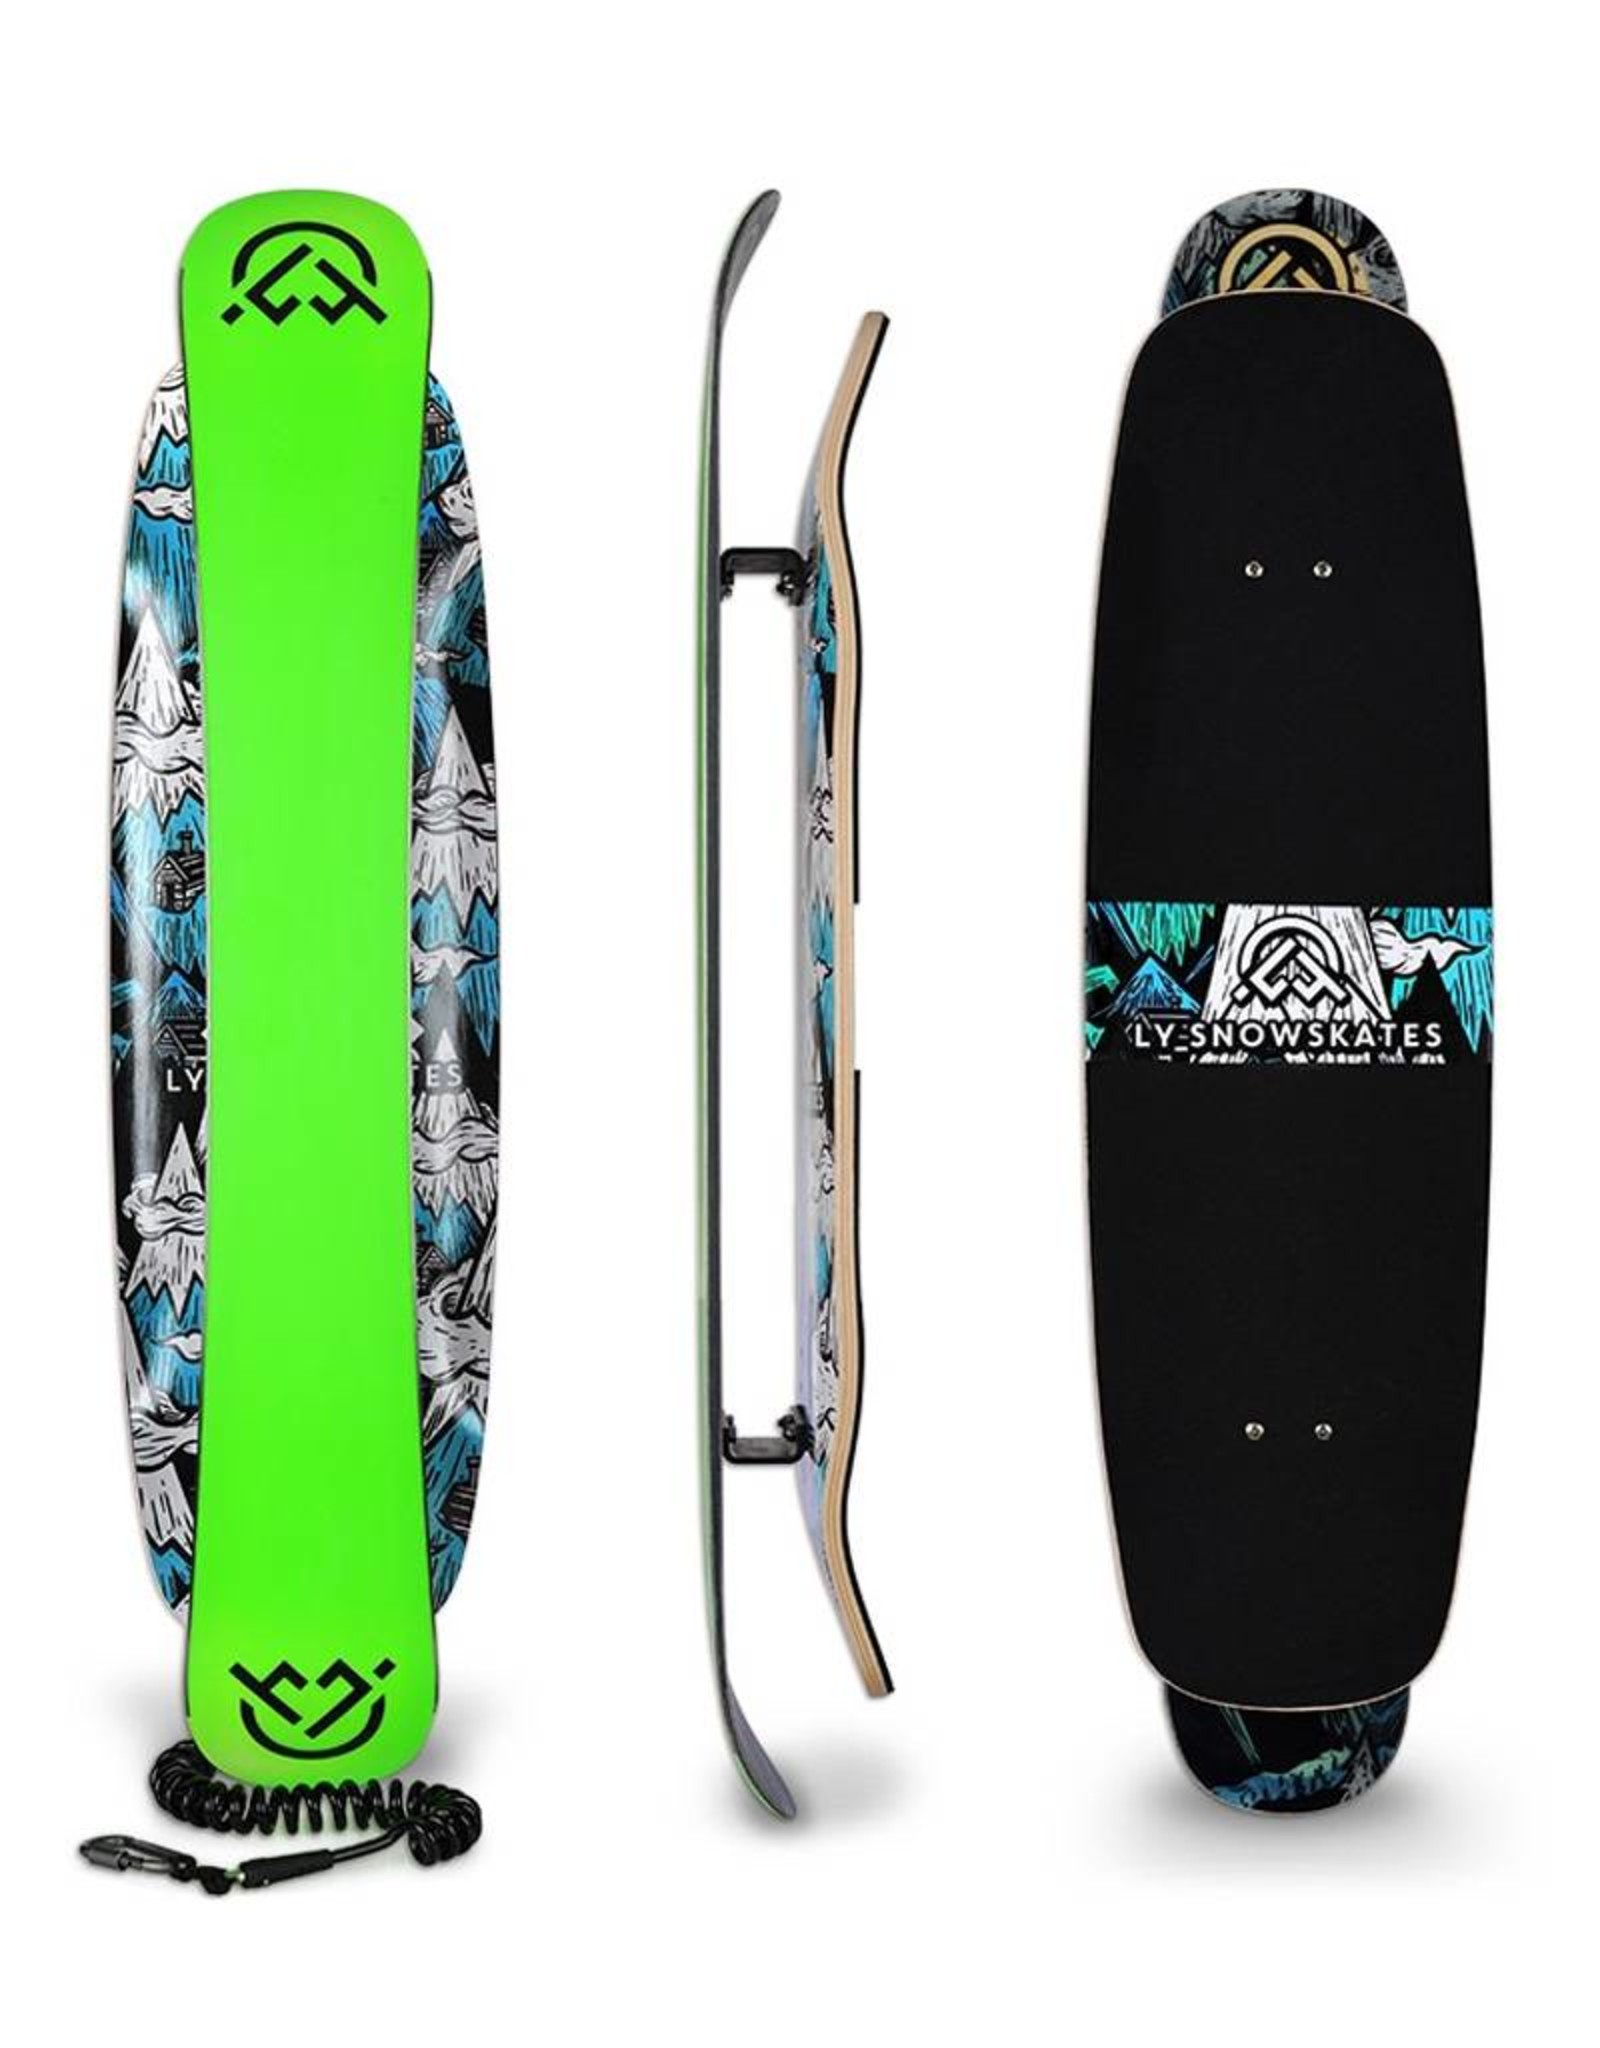 LY Snow LY Snow The Deluxe Doppeldecker Snowskate